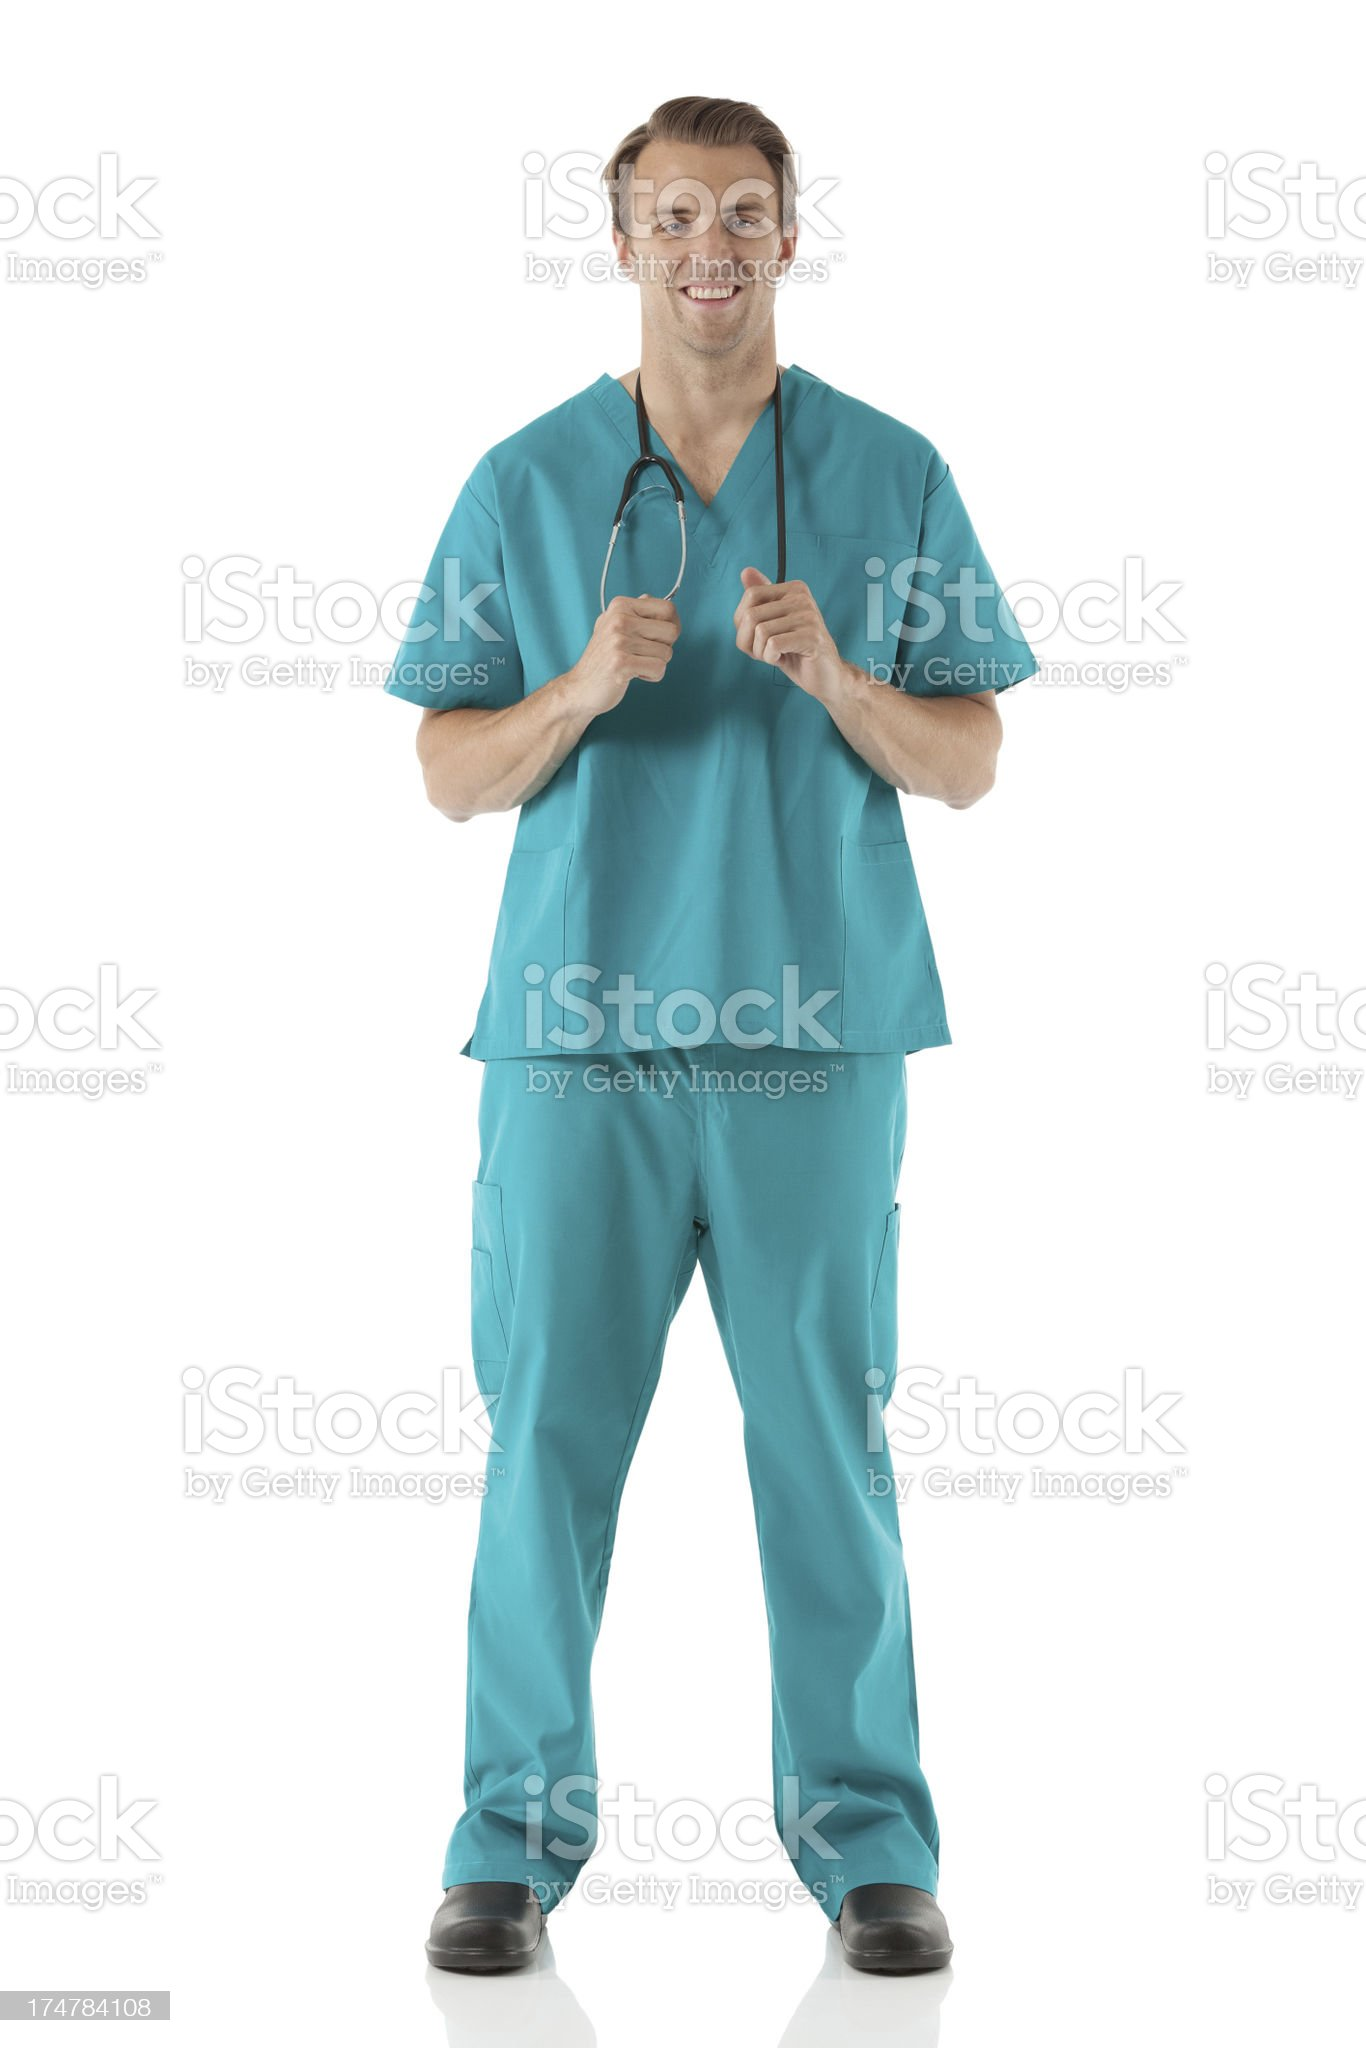 Male surgeon holding a stethoscope and smiling royalty-free stock photo